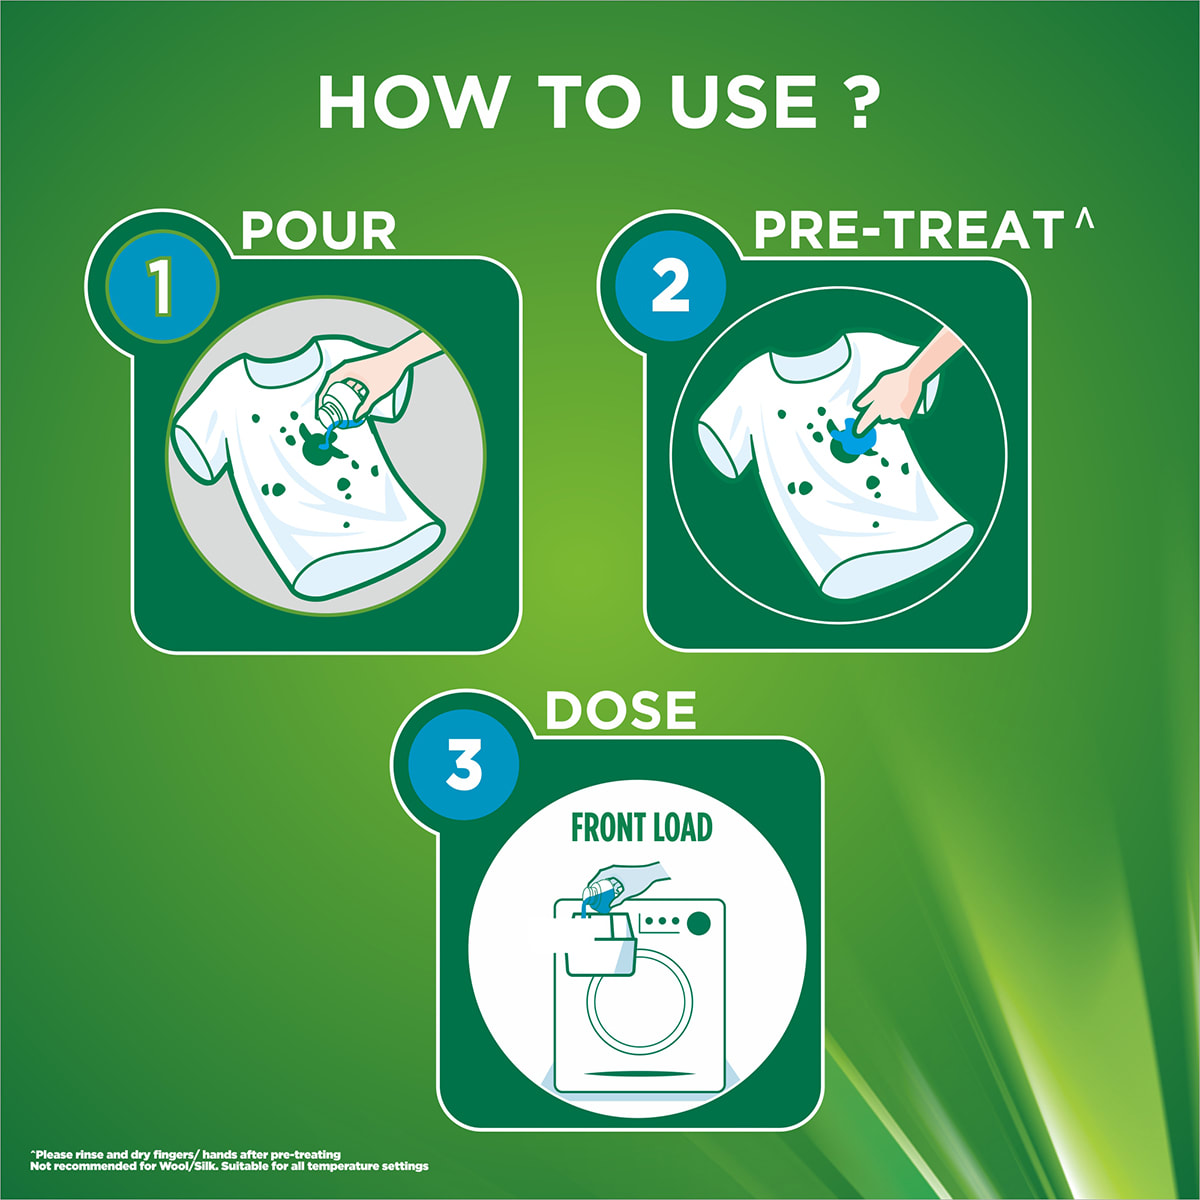 How to use it in 3 easy steps: 1) Pour, 2) Pre-treat and 3) Dose in your top loader